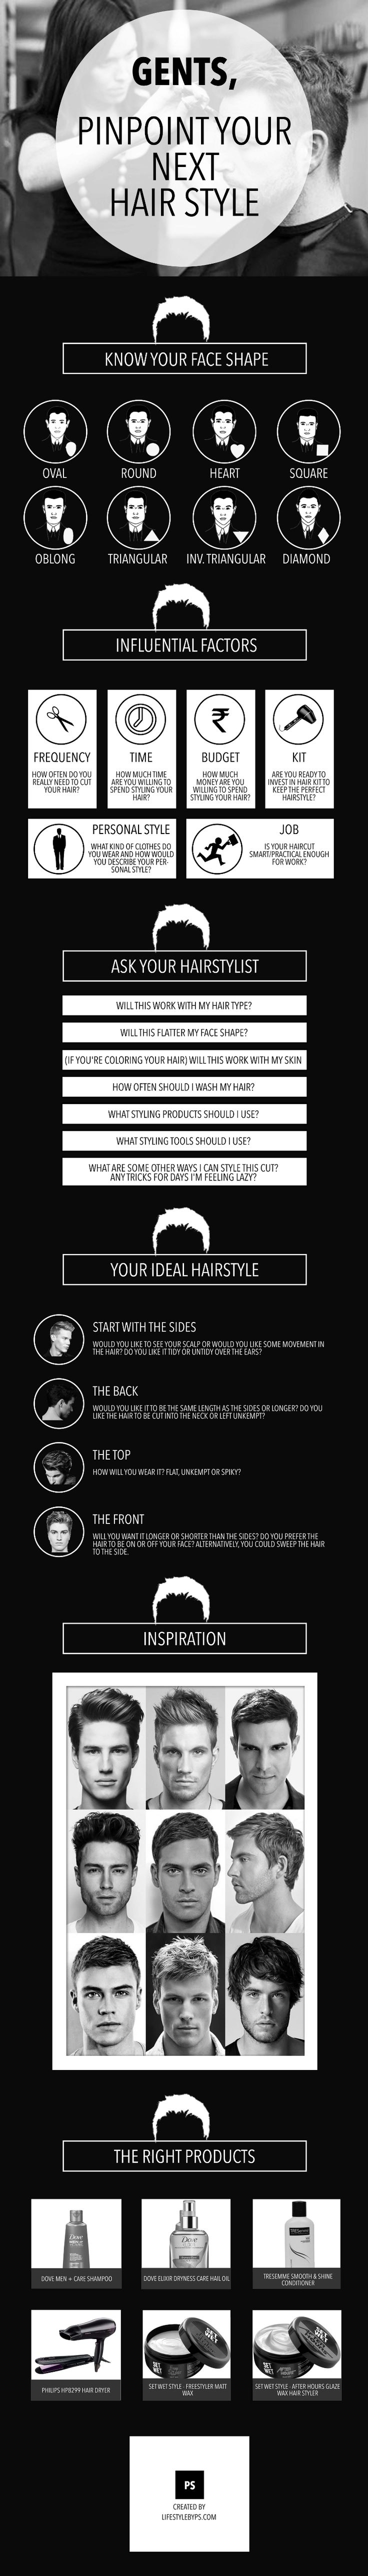 Best Hairstyles for Men 8 Best Hairstyles for Men with Thick Hair